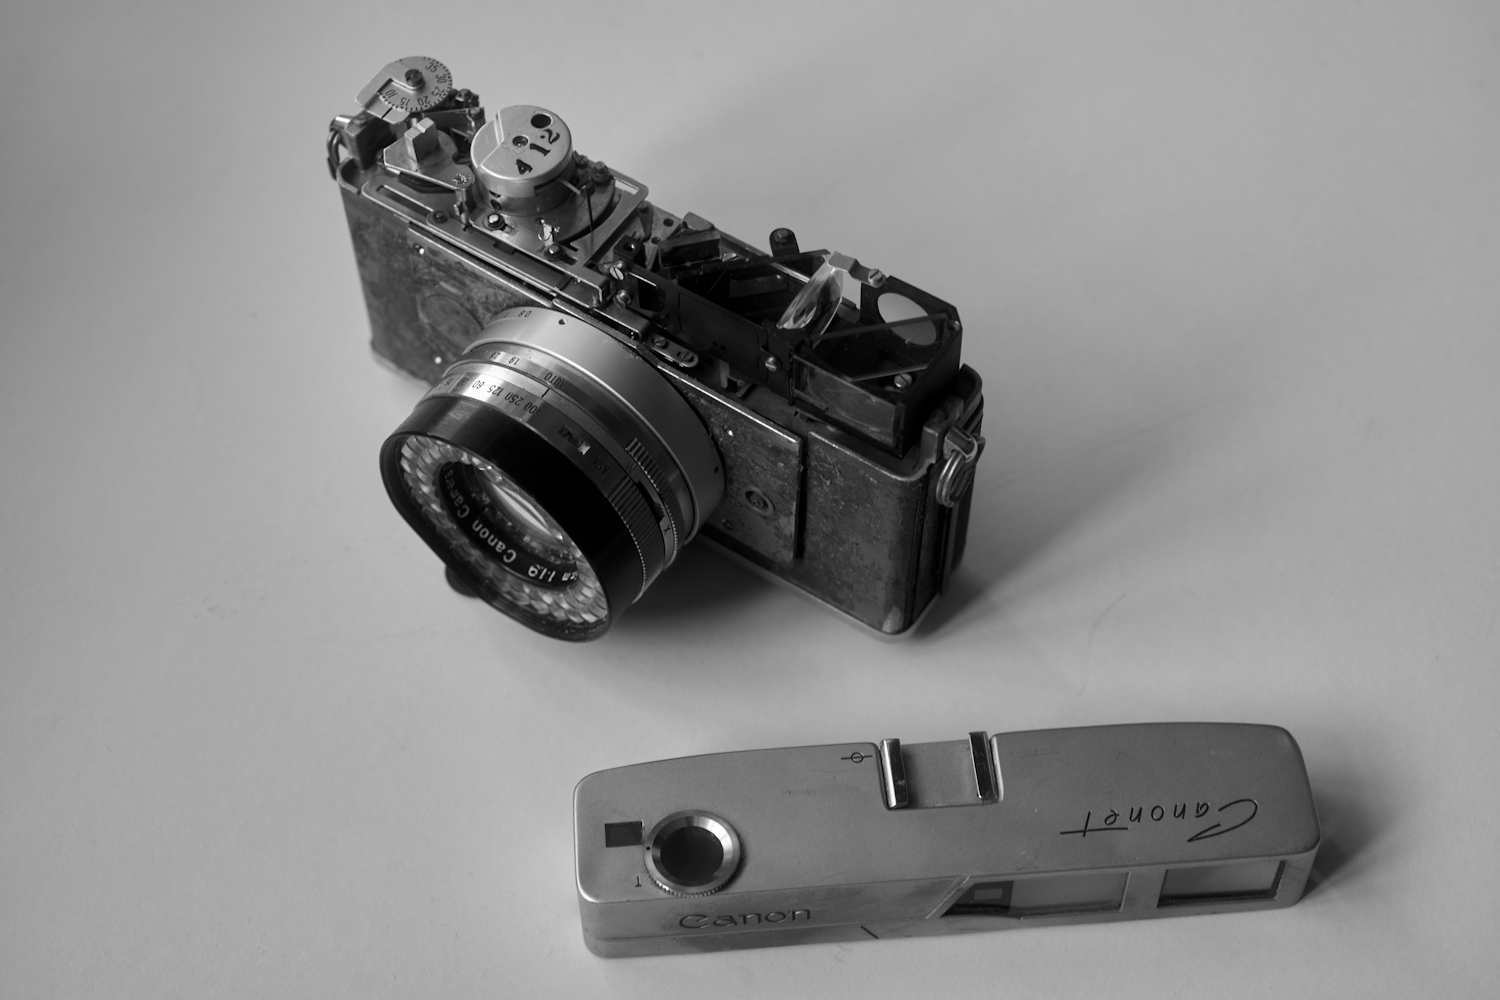 It's Dead Jim – A Dissection of an Old Rangefinder Camera - By Bob Janes - 35mmc